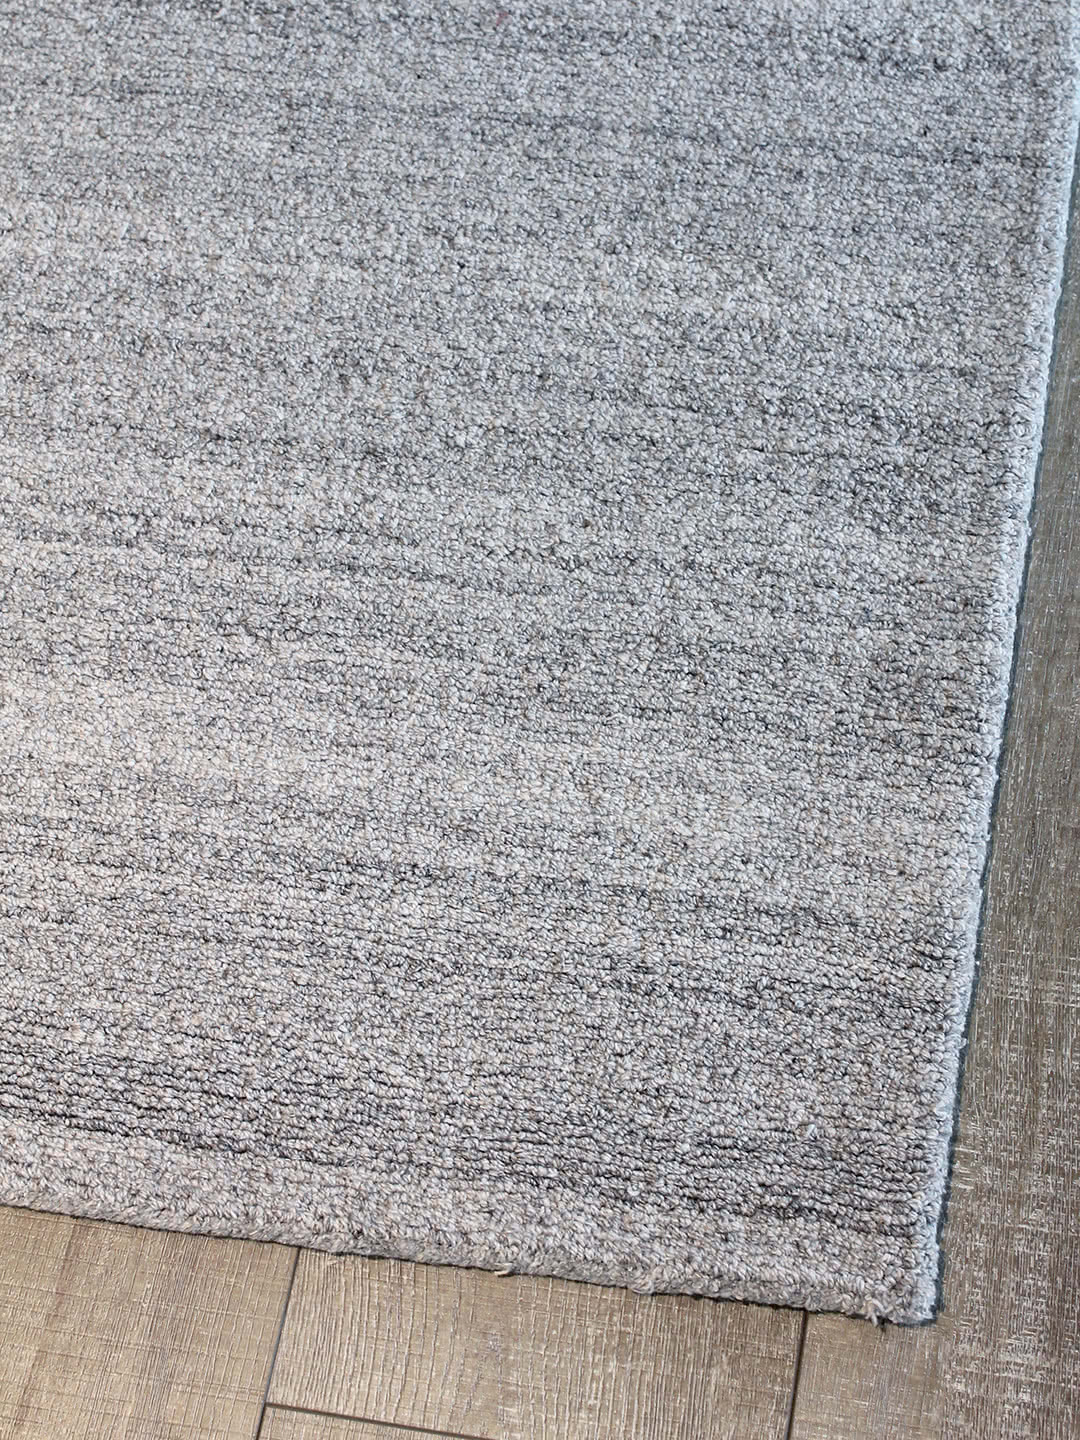 Silver wool and art silk rugs Perth